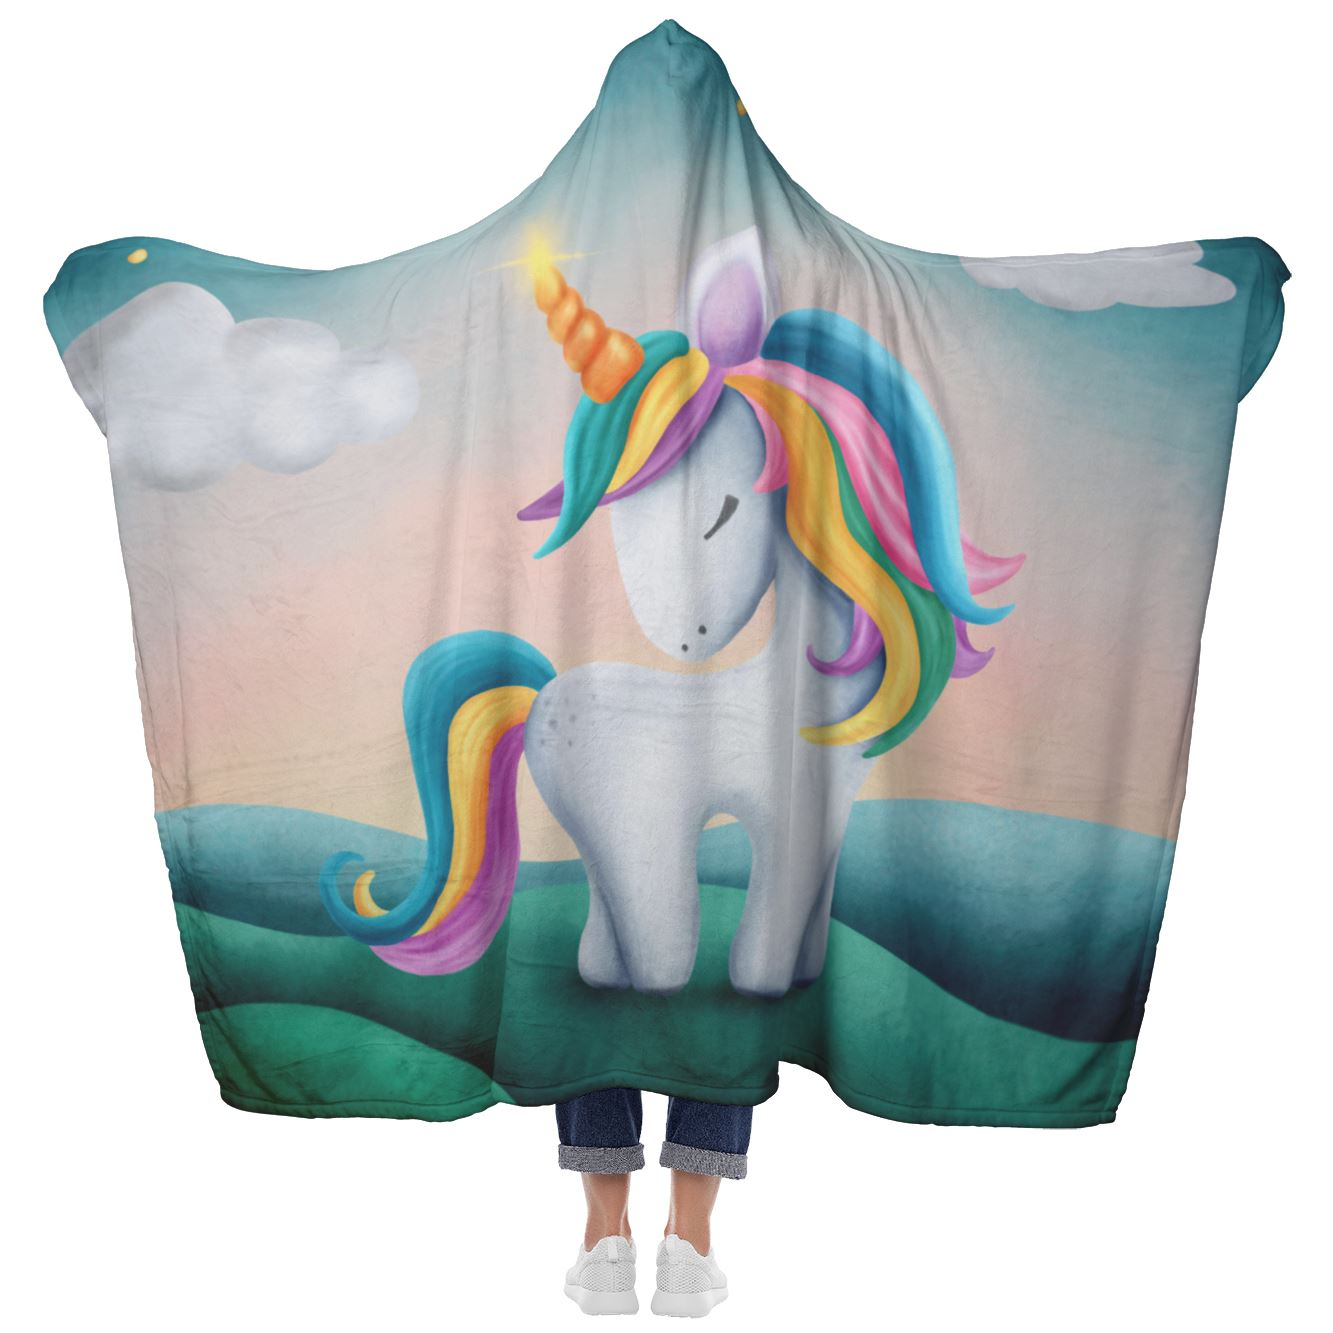 Fleece Unicorn Sherpa Lined Blanket Custom Design with hood and mittens